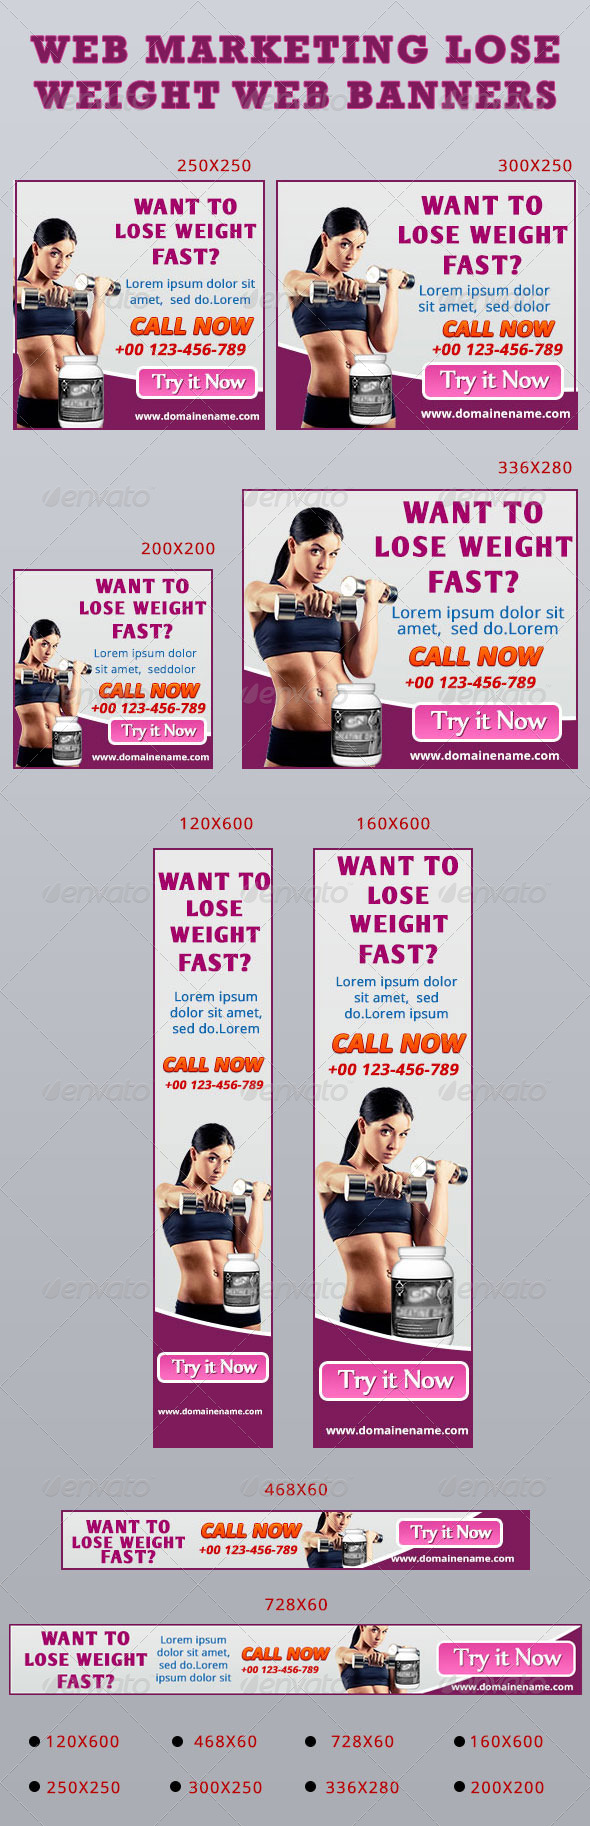 Web Marketing Lose Weight Web Banners - Banners & Ads Web Elements